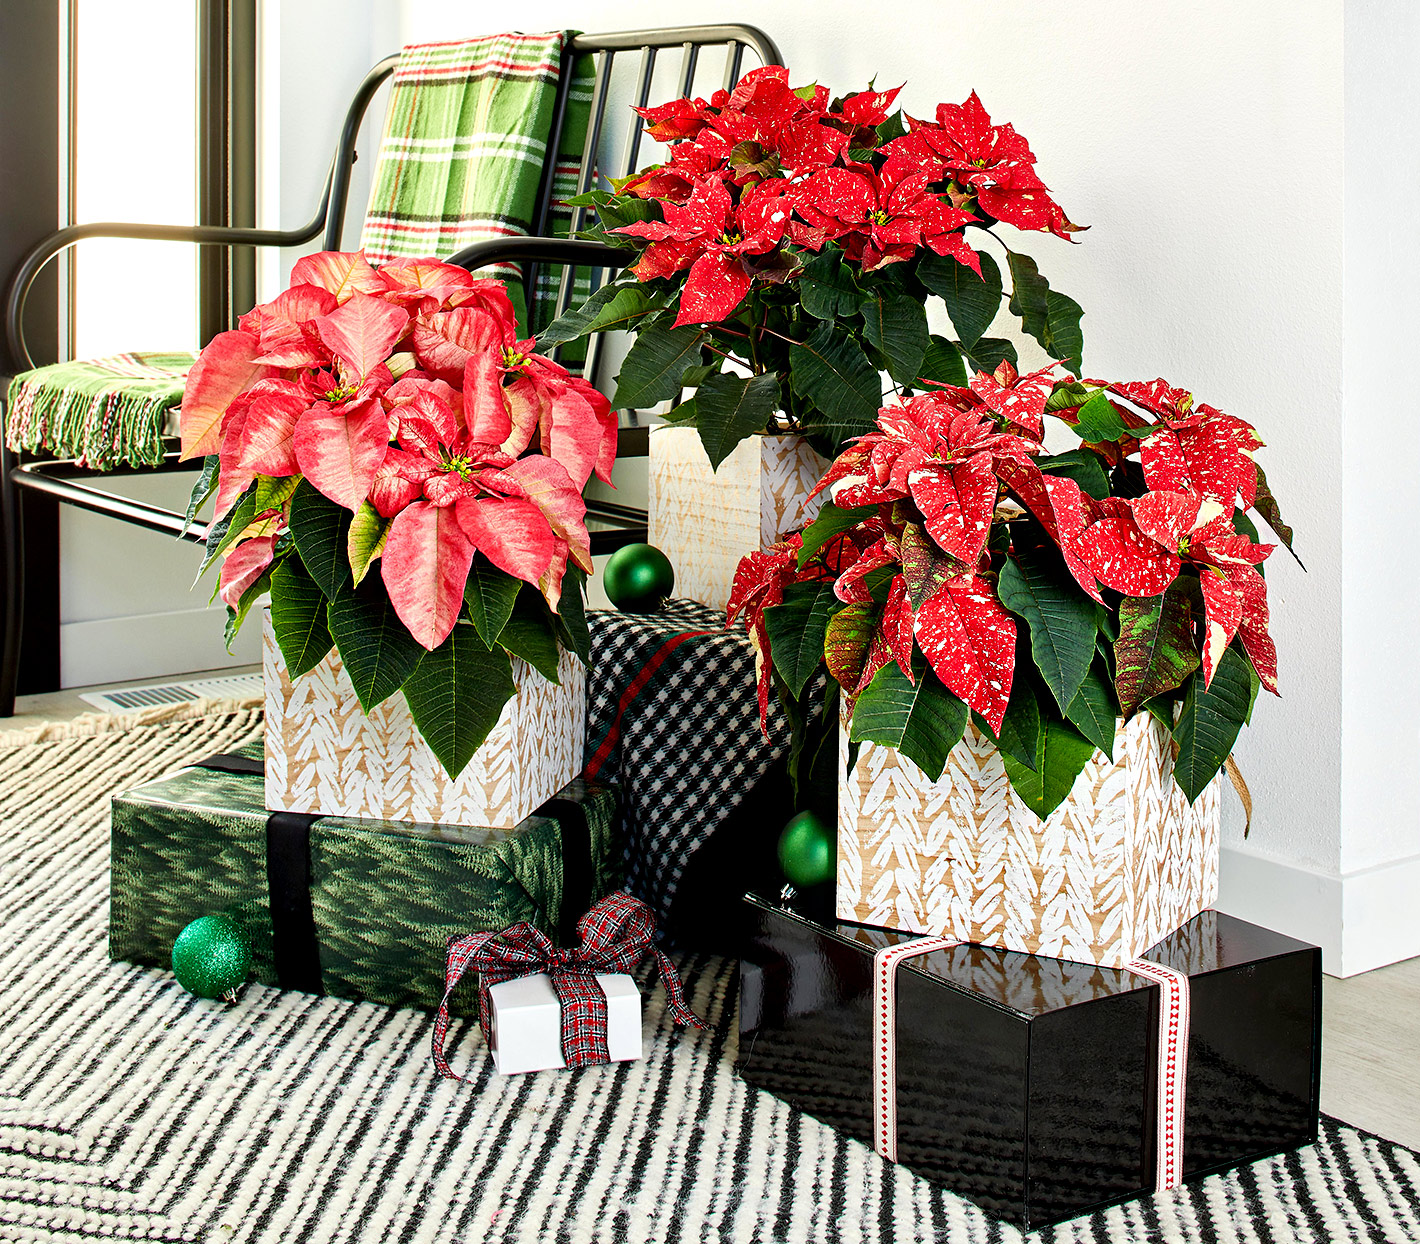 Poinsettias on top of wrapped gifts